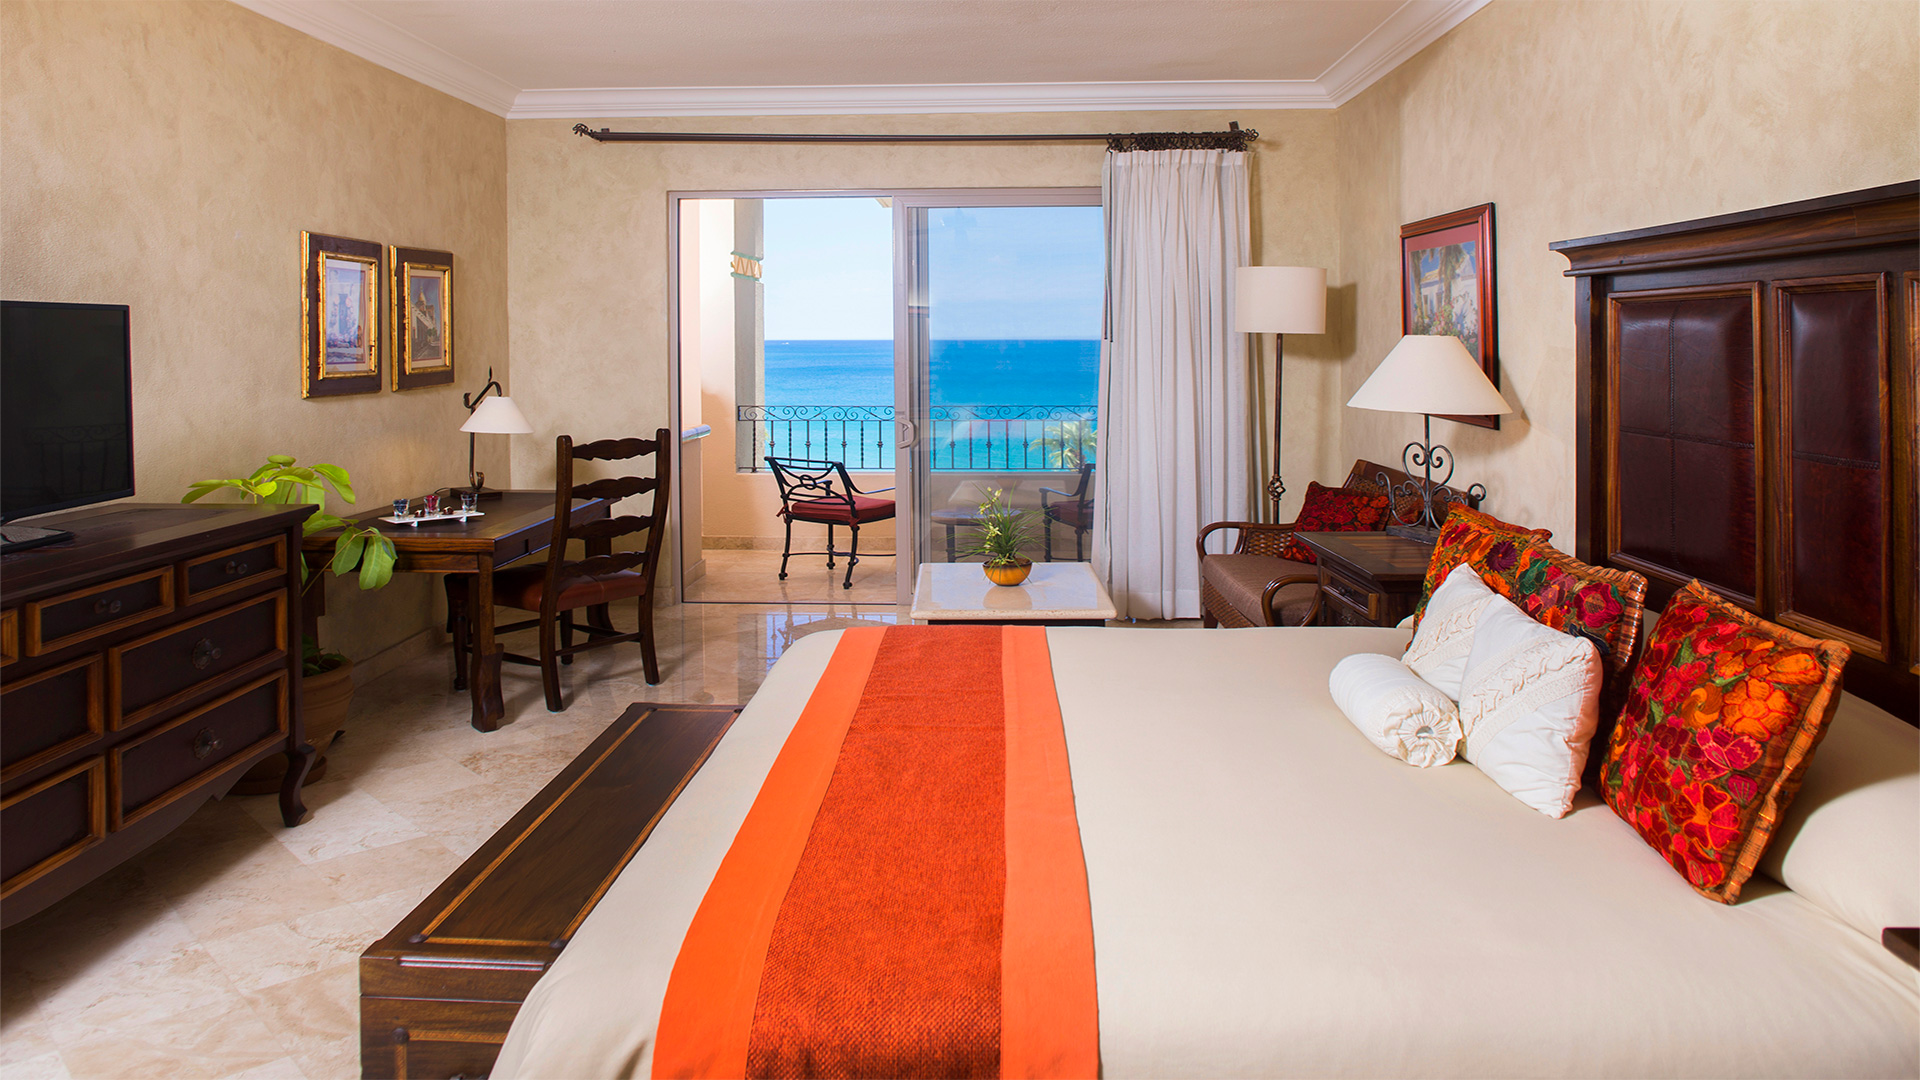 Three Bedroom Suite Villa La Estancia Beach Resort & Spa Los Cabos